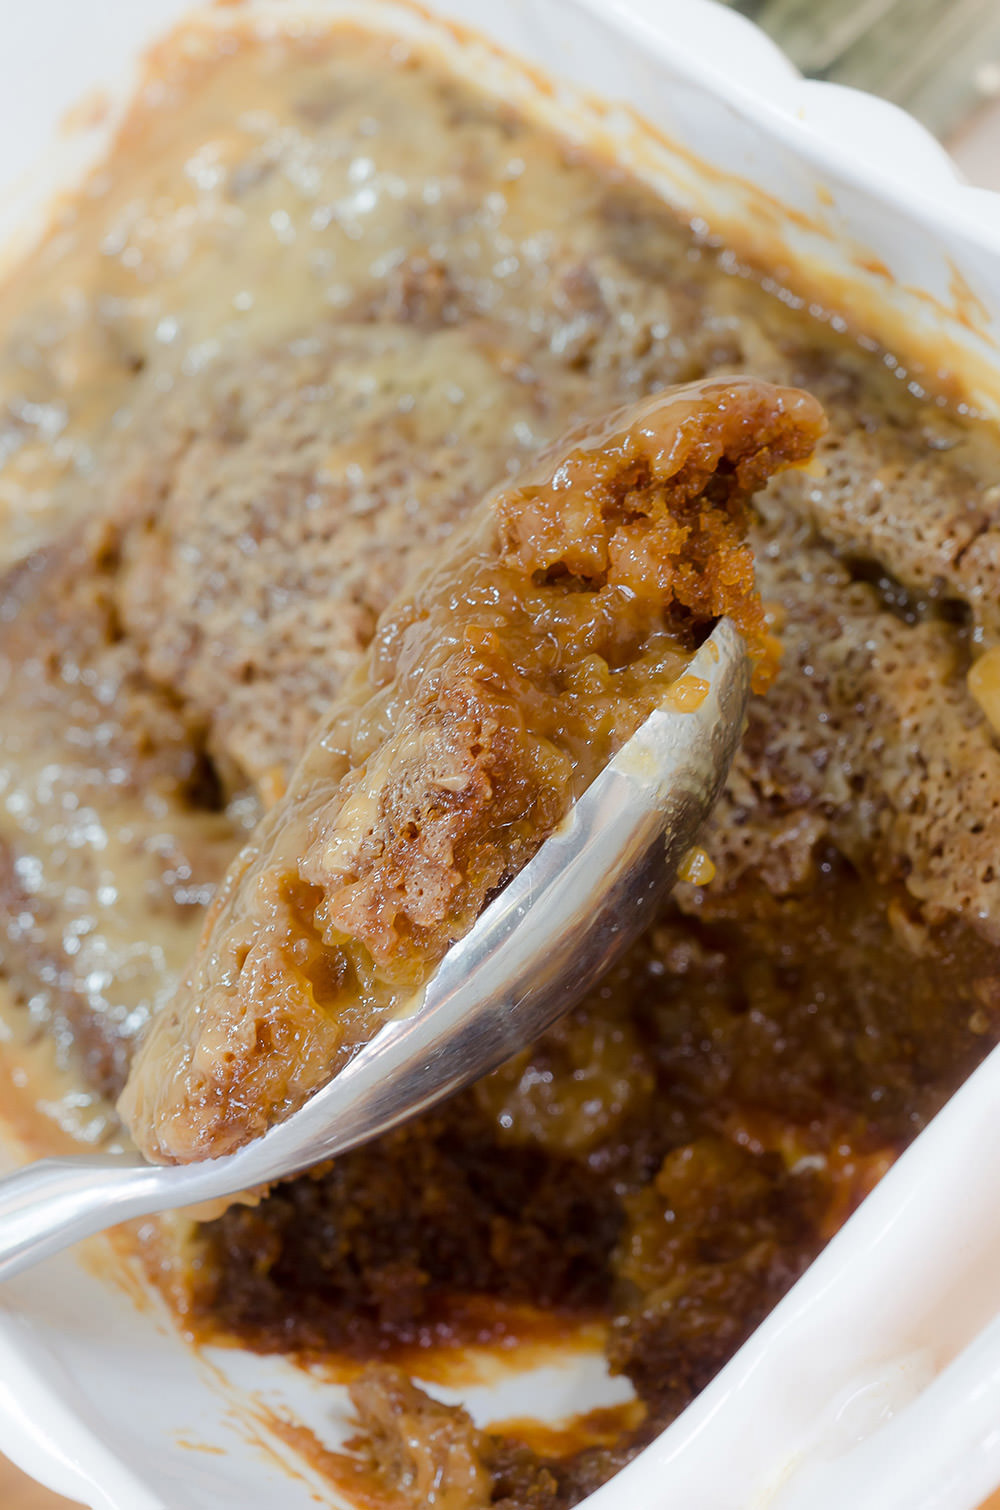 Johns' Malva Pudding / Karen E Photography (p)